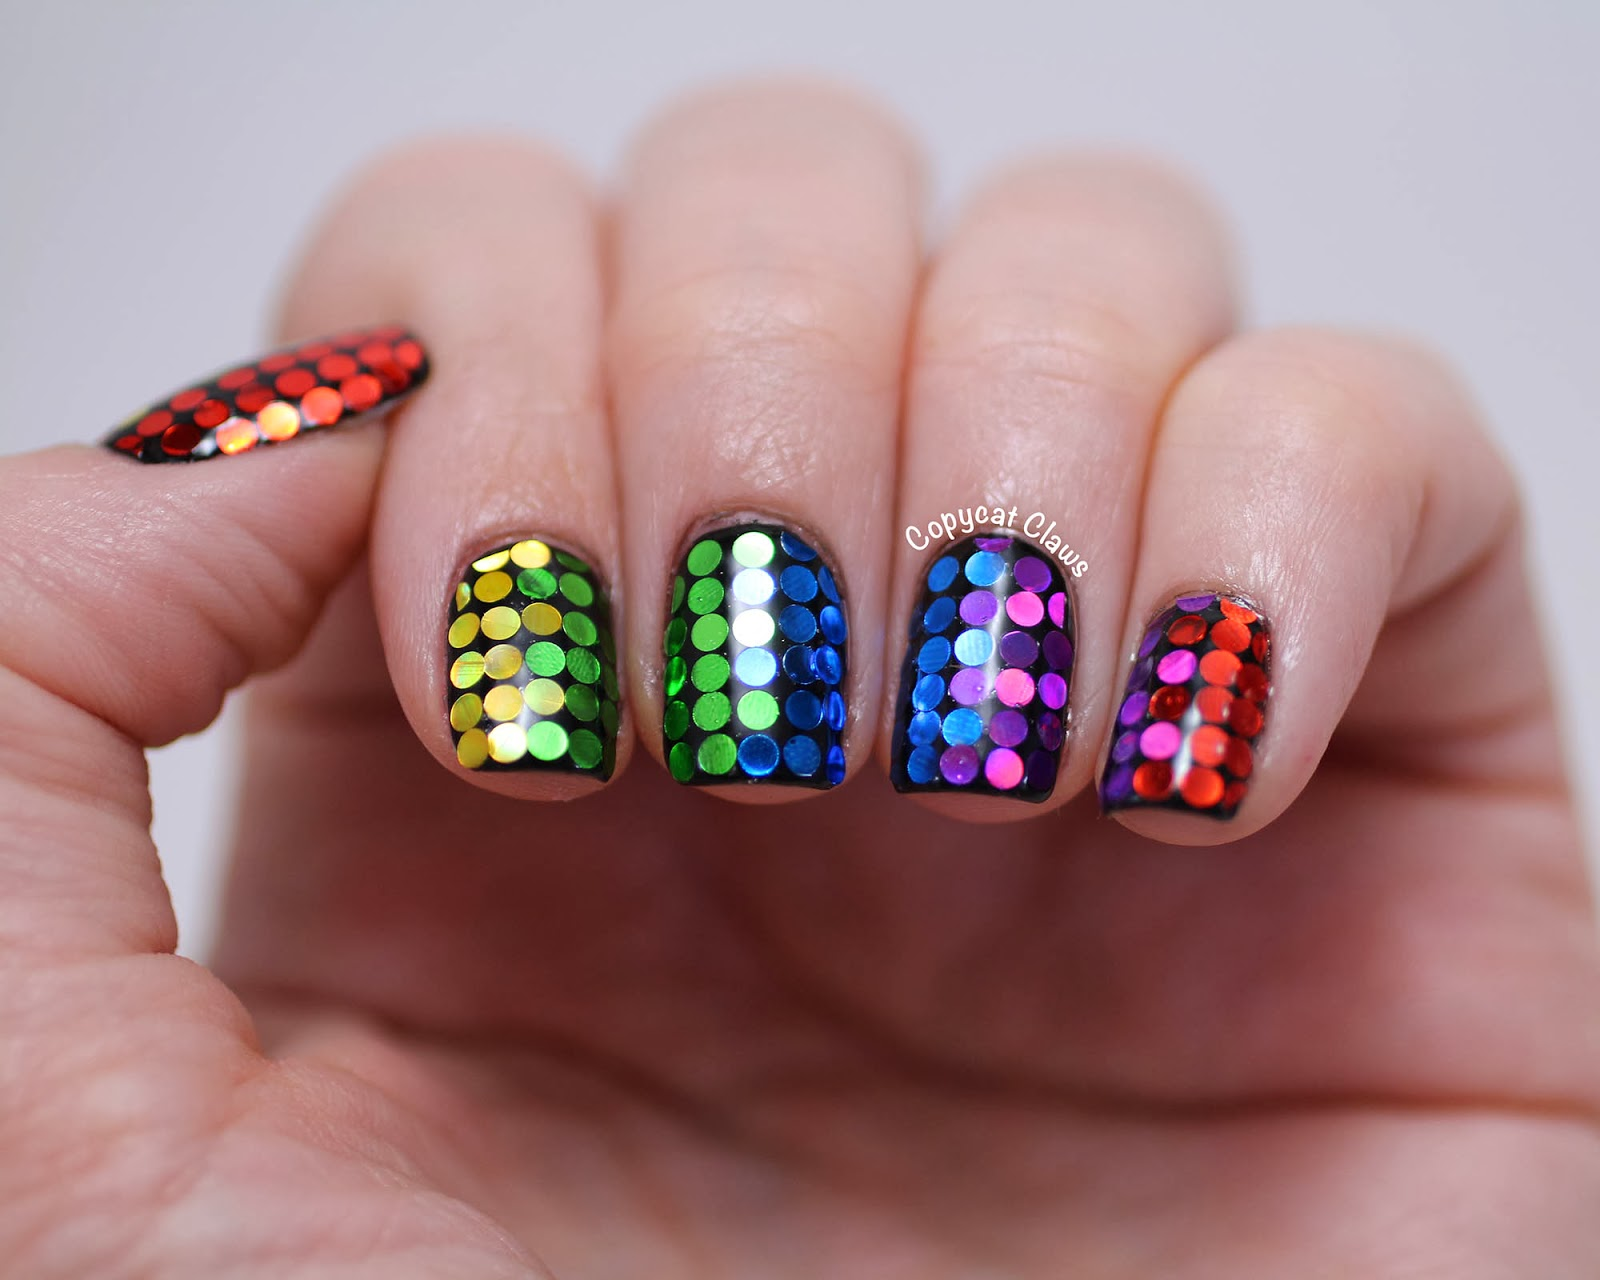 Copycat claws glitter rainbow nails seriously if you havent checked out polish all the nails youre doing yourself a disservice run and go check out all her glitter placement manicures solutioingenieria Gallery